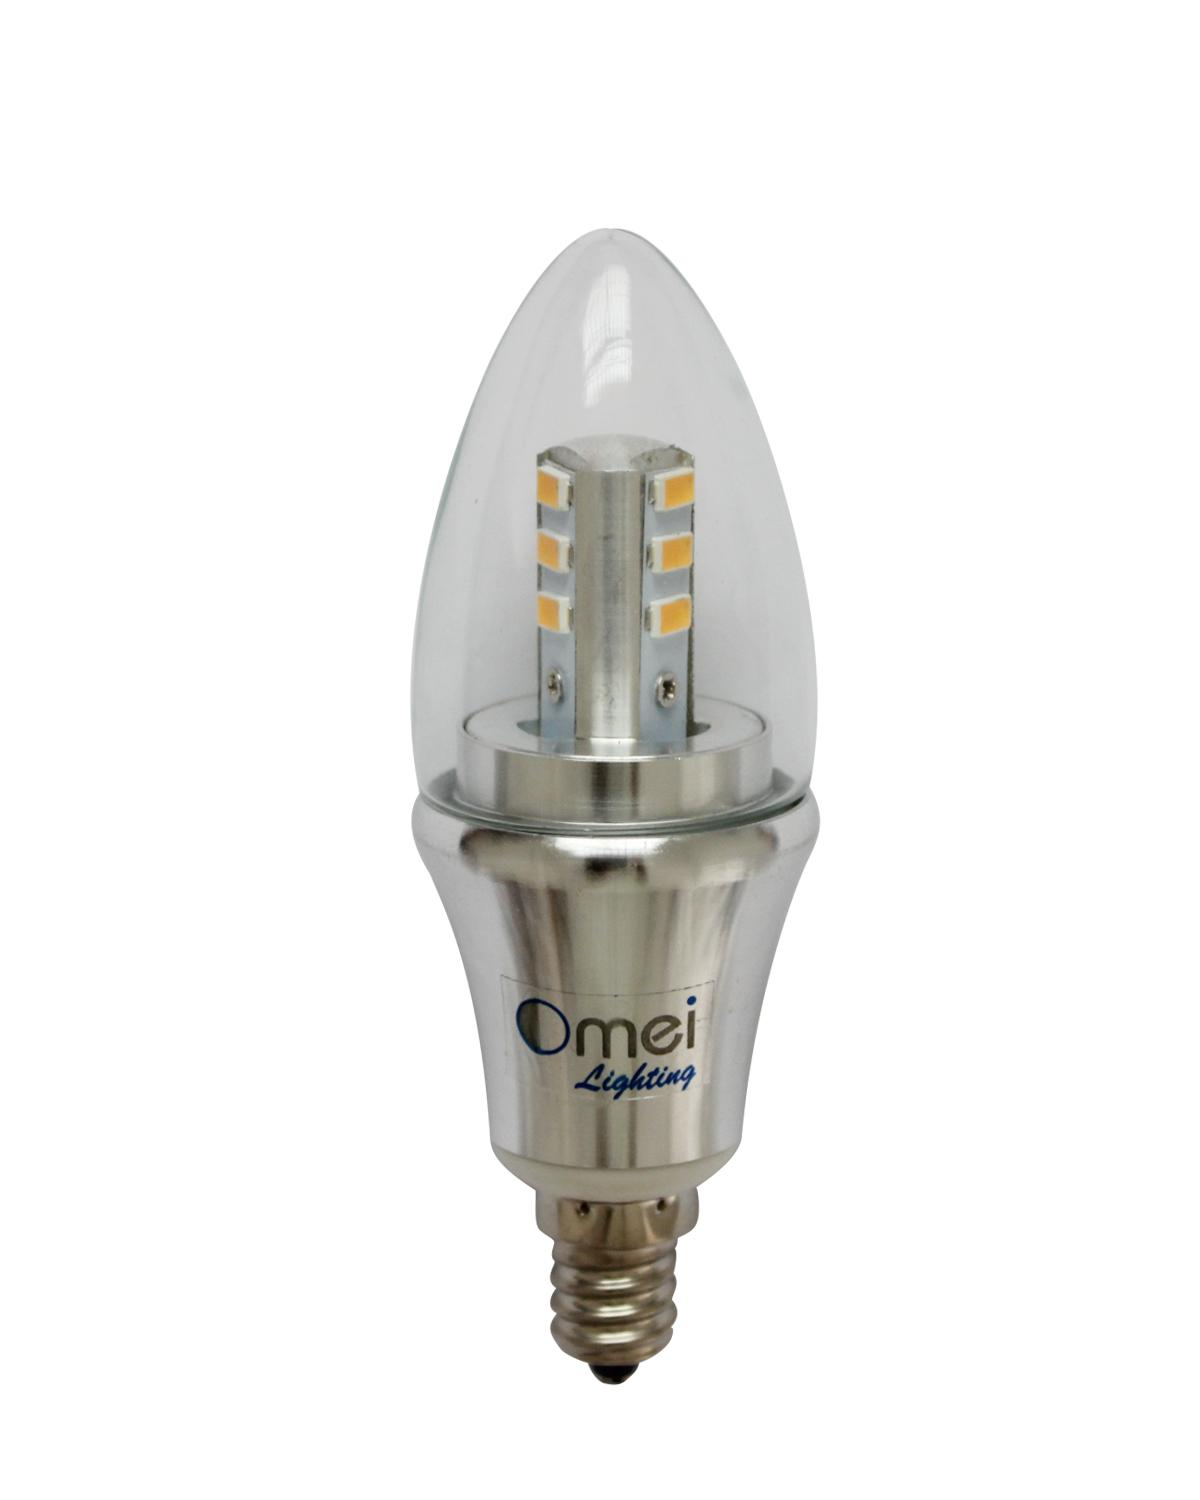 Led candelabra bulb daylight dimmable 6 pack omailighting e12 6w 60w led candelabra bulb daylight dimmable 6 pack omailighting e12 6w 60w 60 watts led bulb bullet top led candelabra bulb led daylight bulb led candle bulb e12 arubaitofo Images